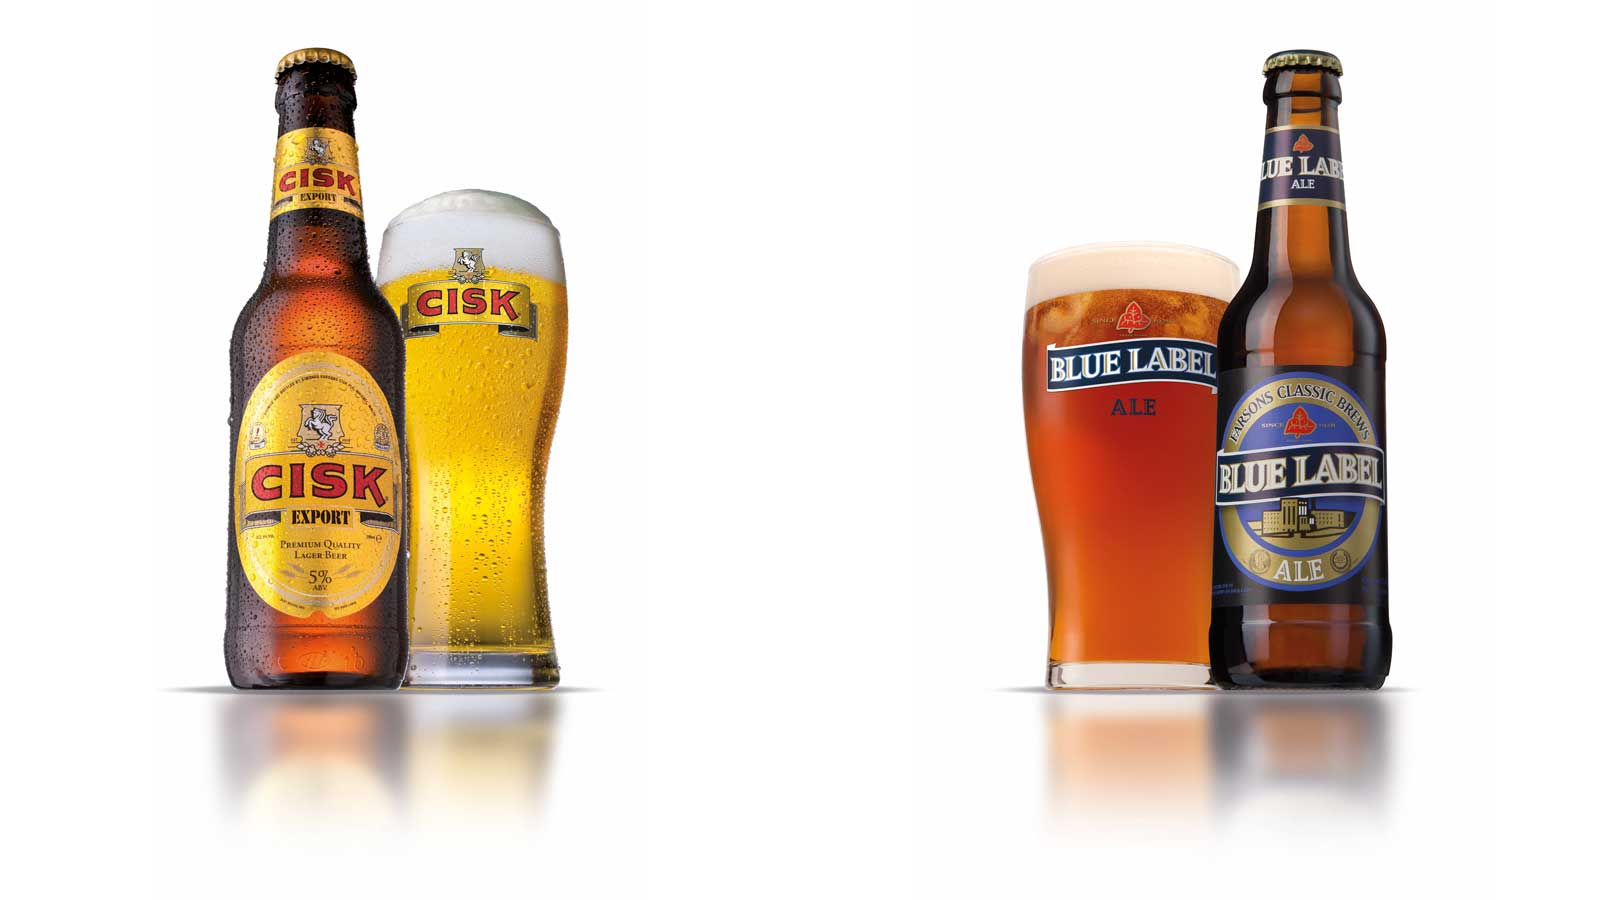 Cisk Export Premium Lager and Blue Label Ale awarded at the Brussels Beer Challenge 2015